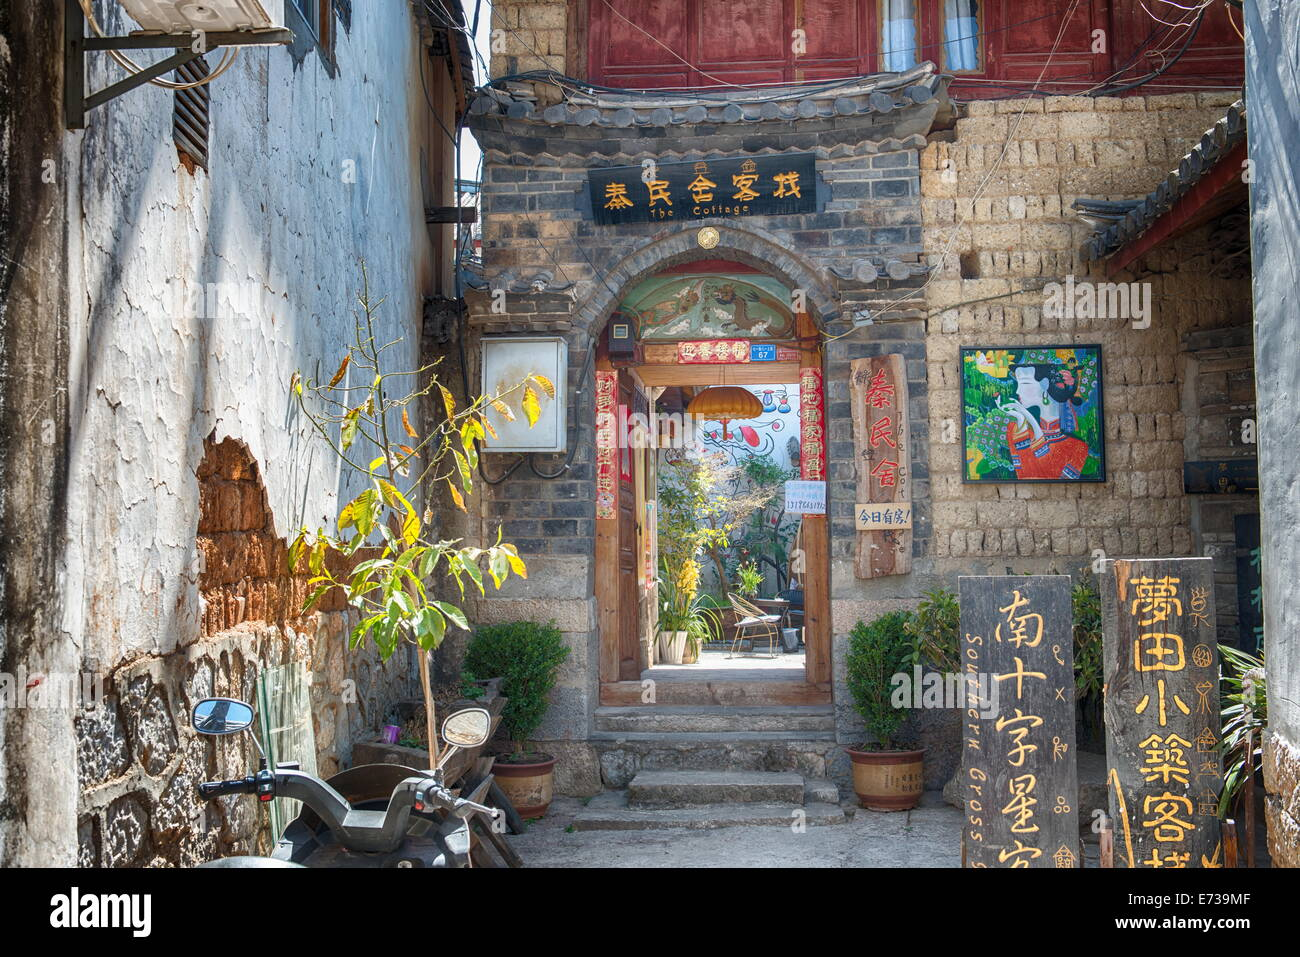 Entrance of a hostel in the old town of Lijiang, UNESCO World Heritage Site, Yunnan, China, Asia - Stock Image